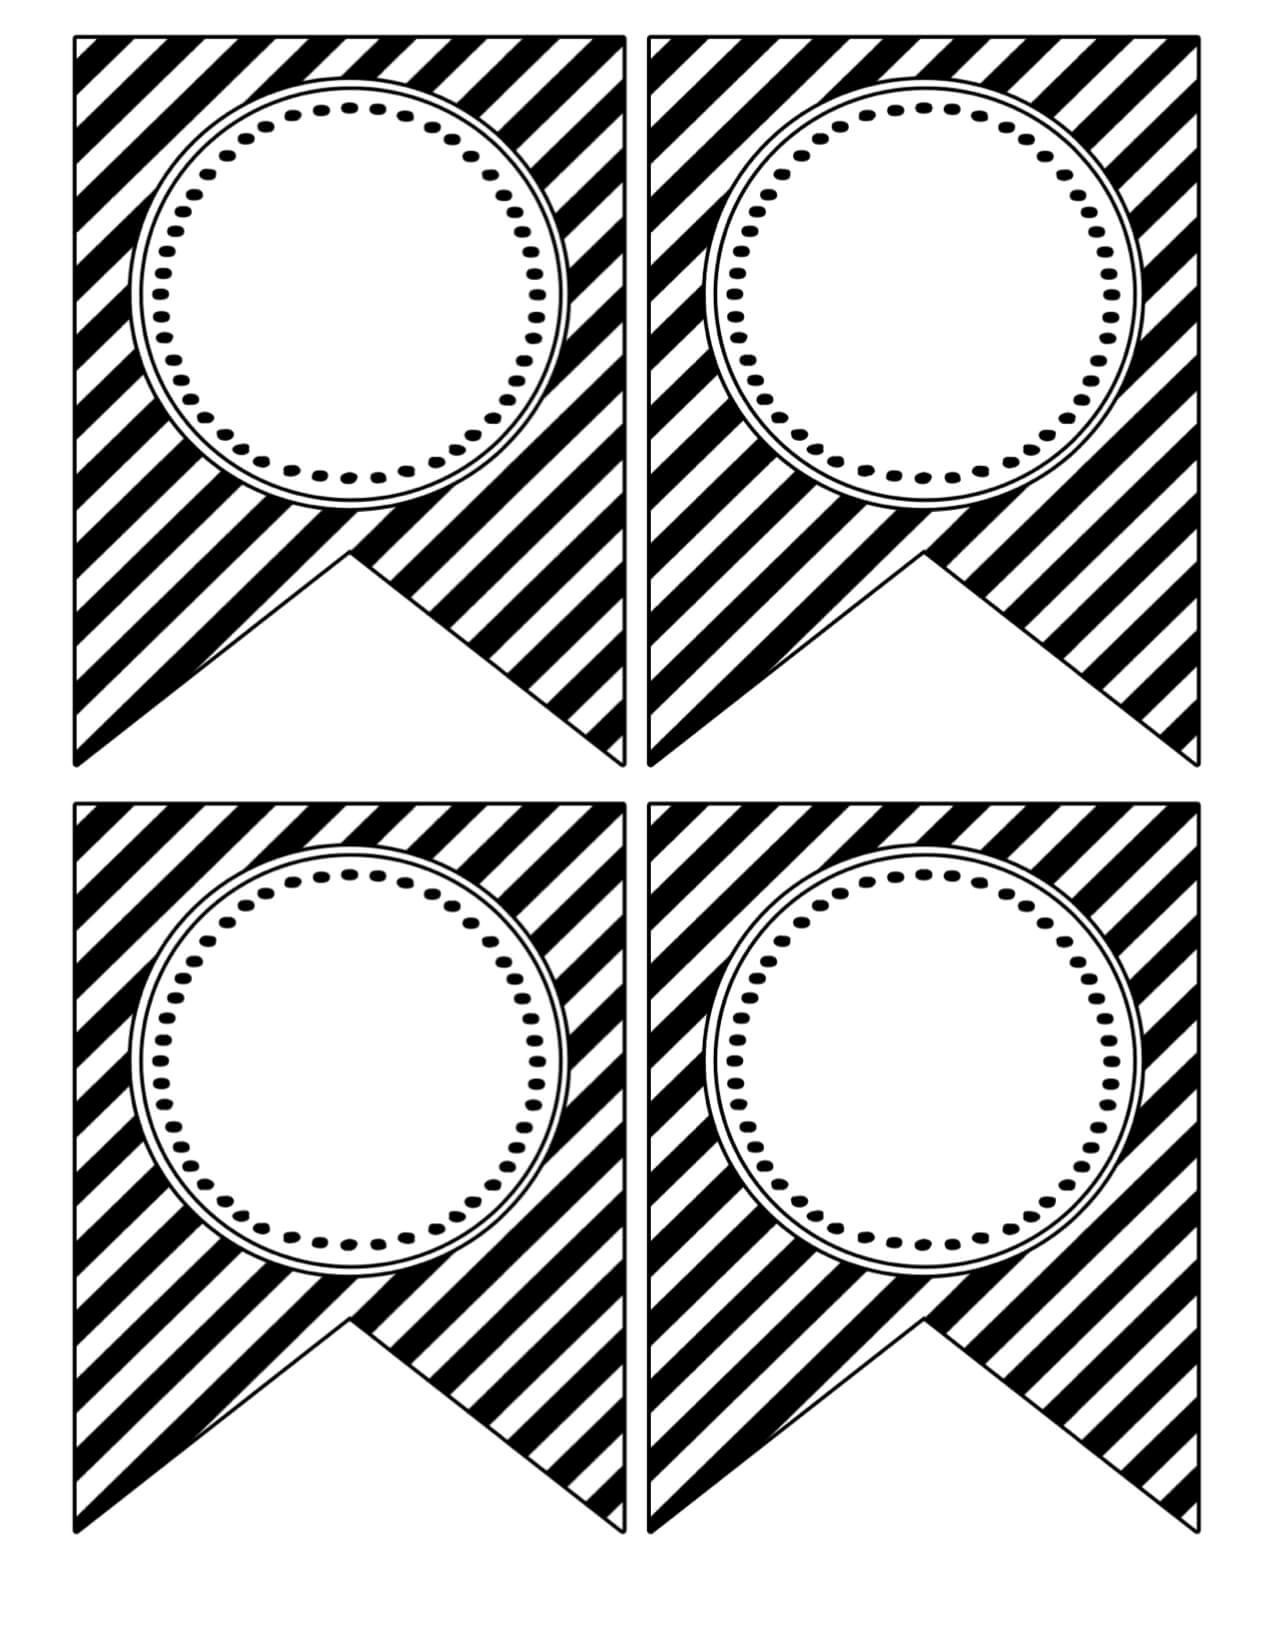 Free Printable Banner Templates {Blank Banners} - Paper within Free Printable Party Banner Templates